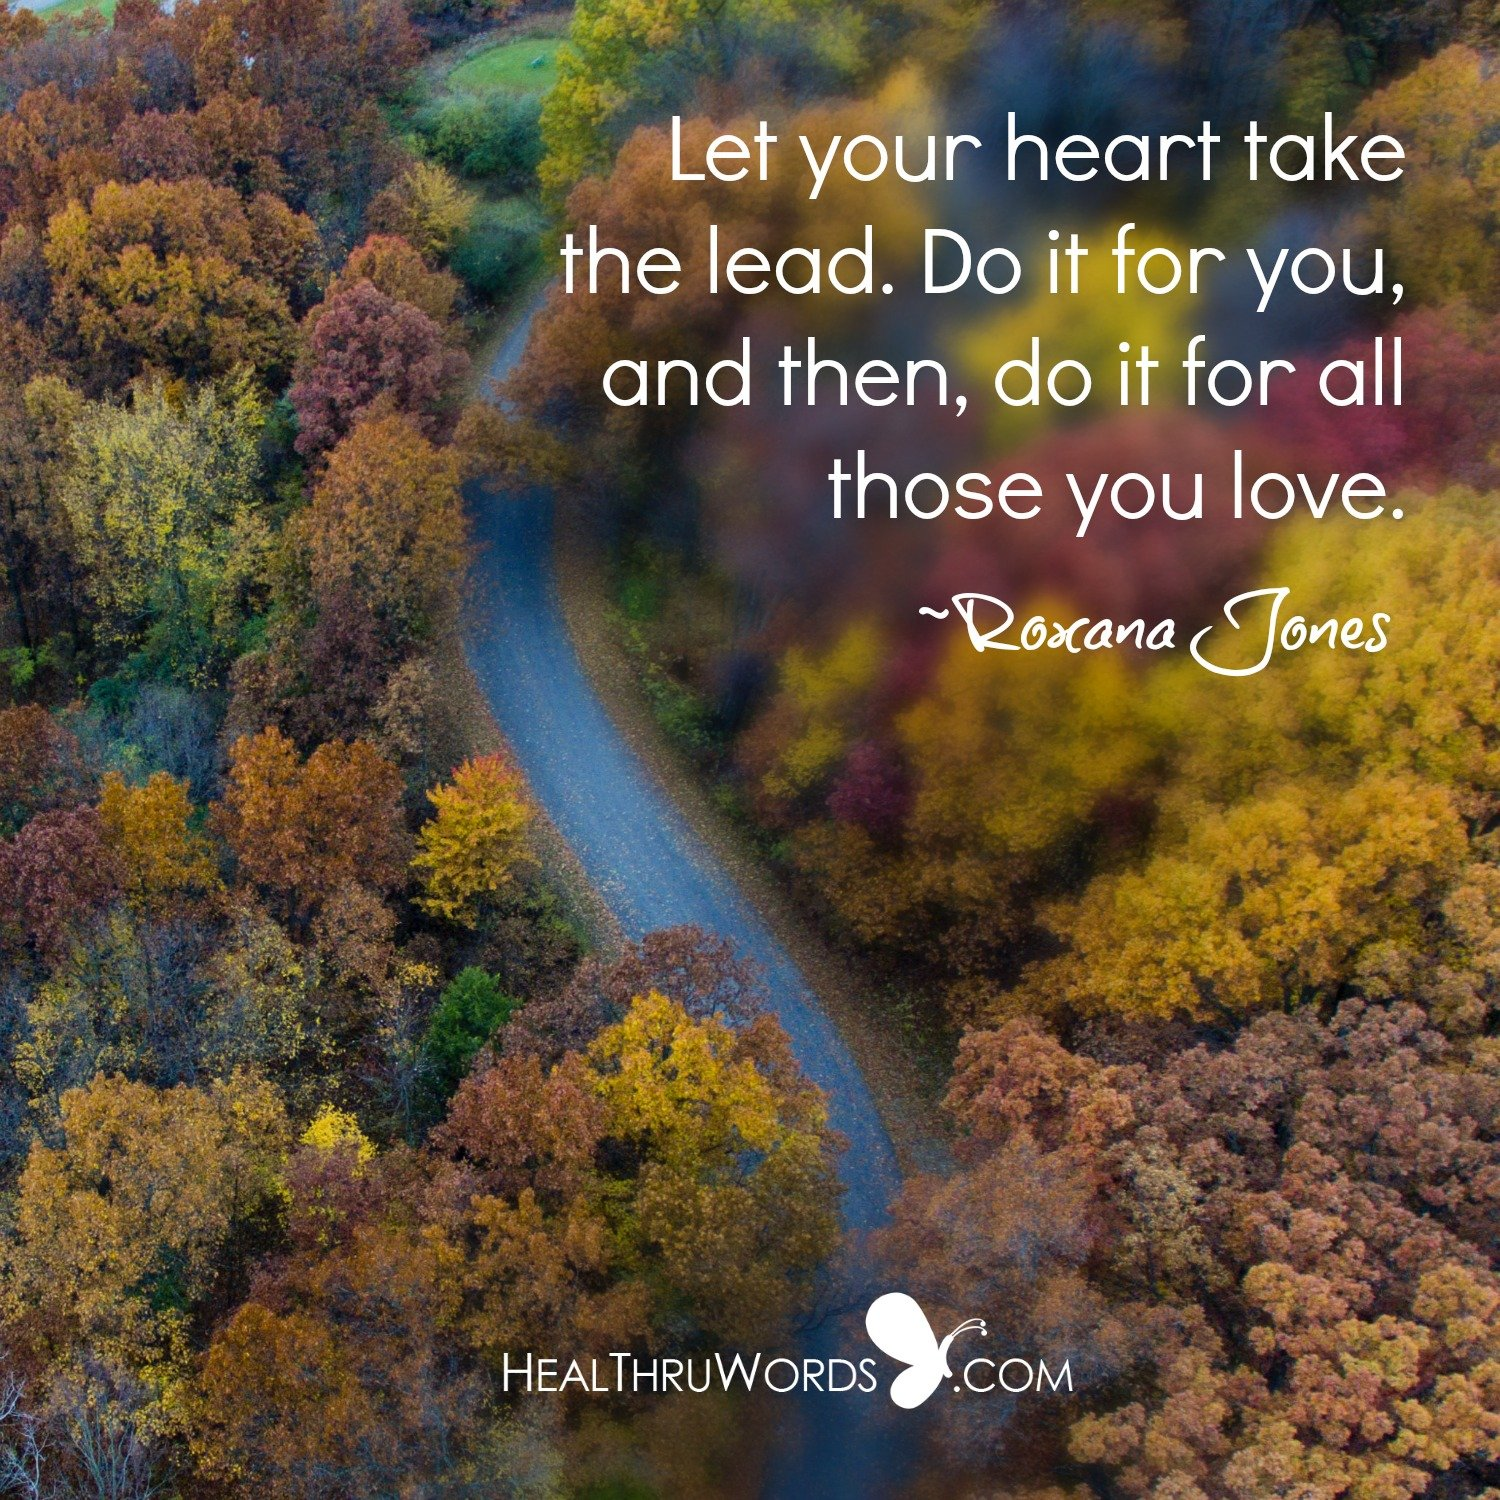 Inspirational Image: The Heart Must Lead